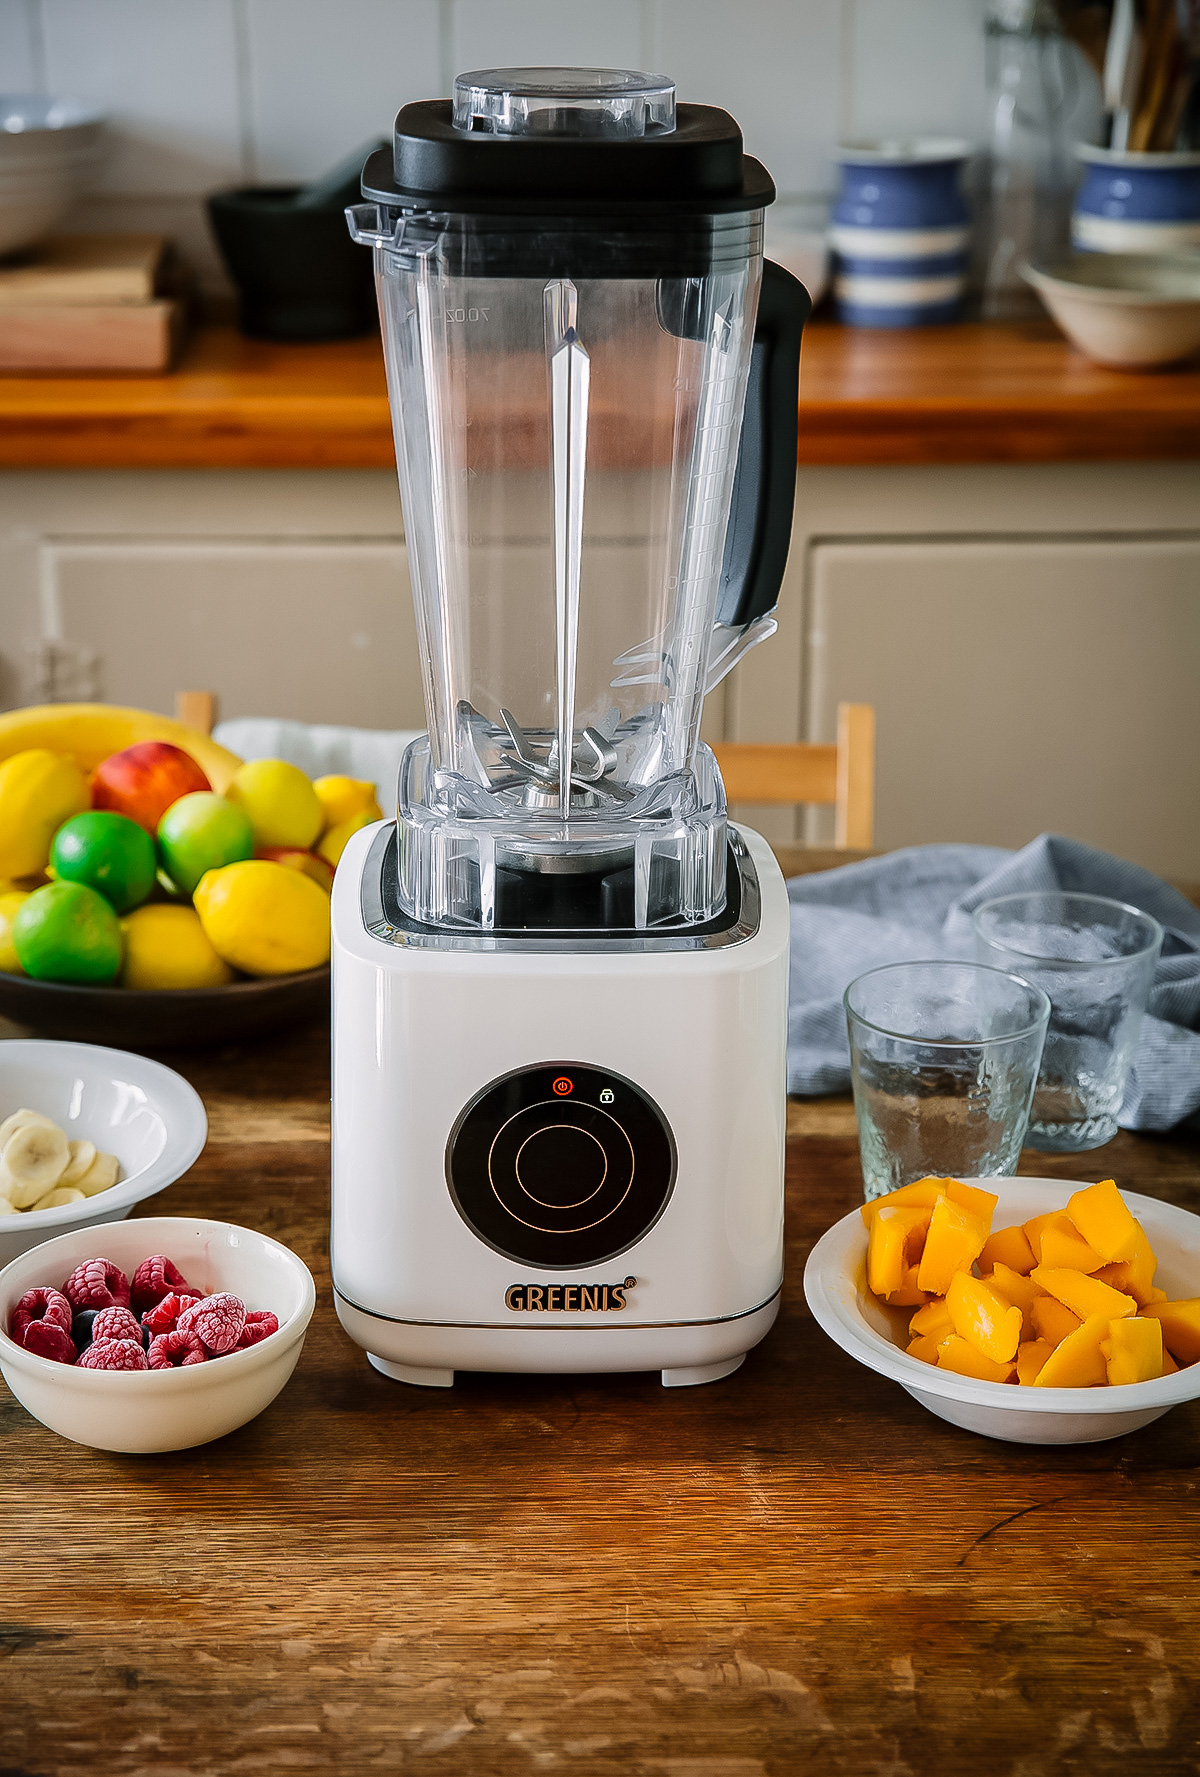 The Greenis smart power blender